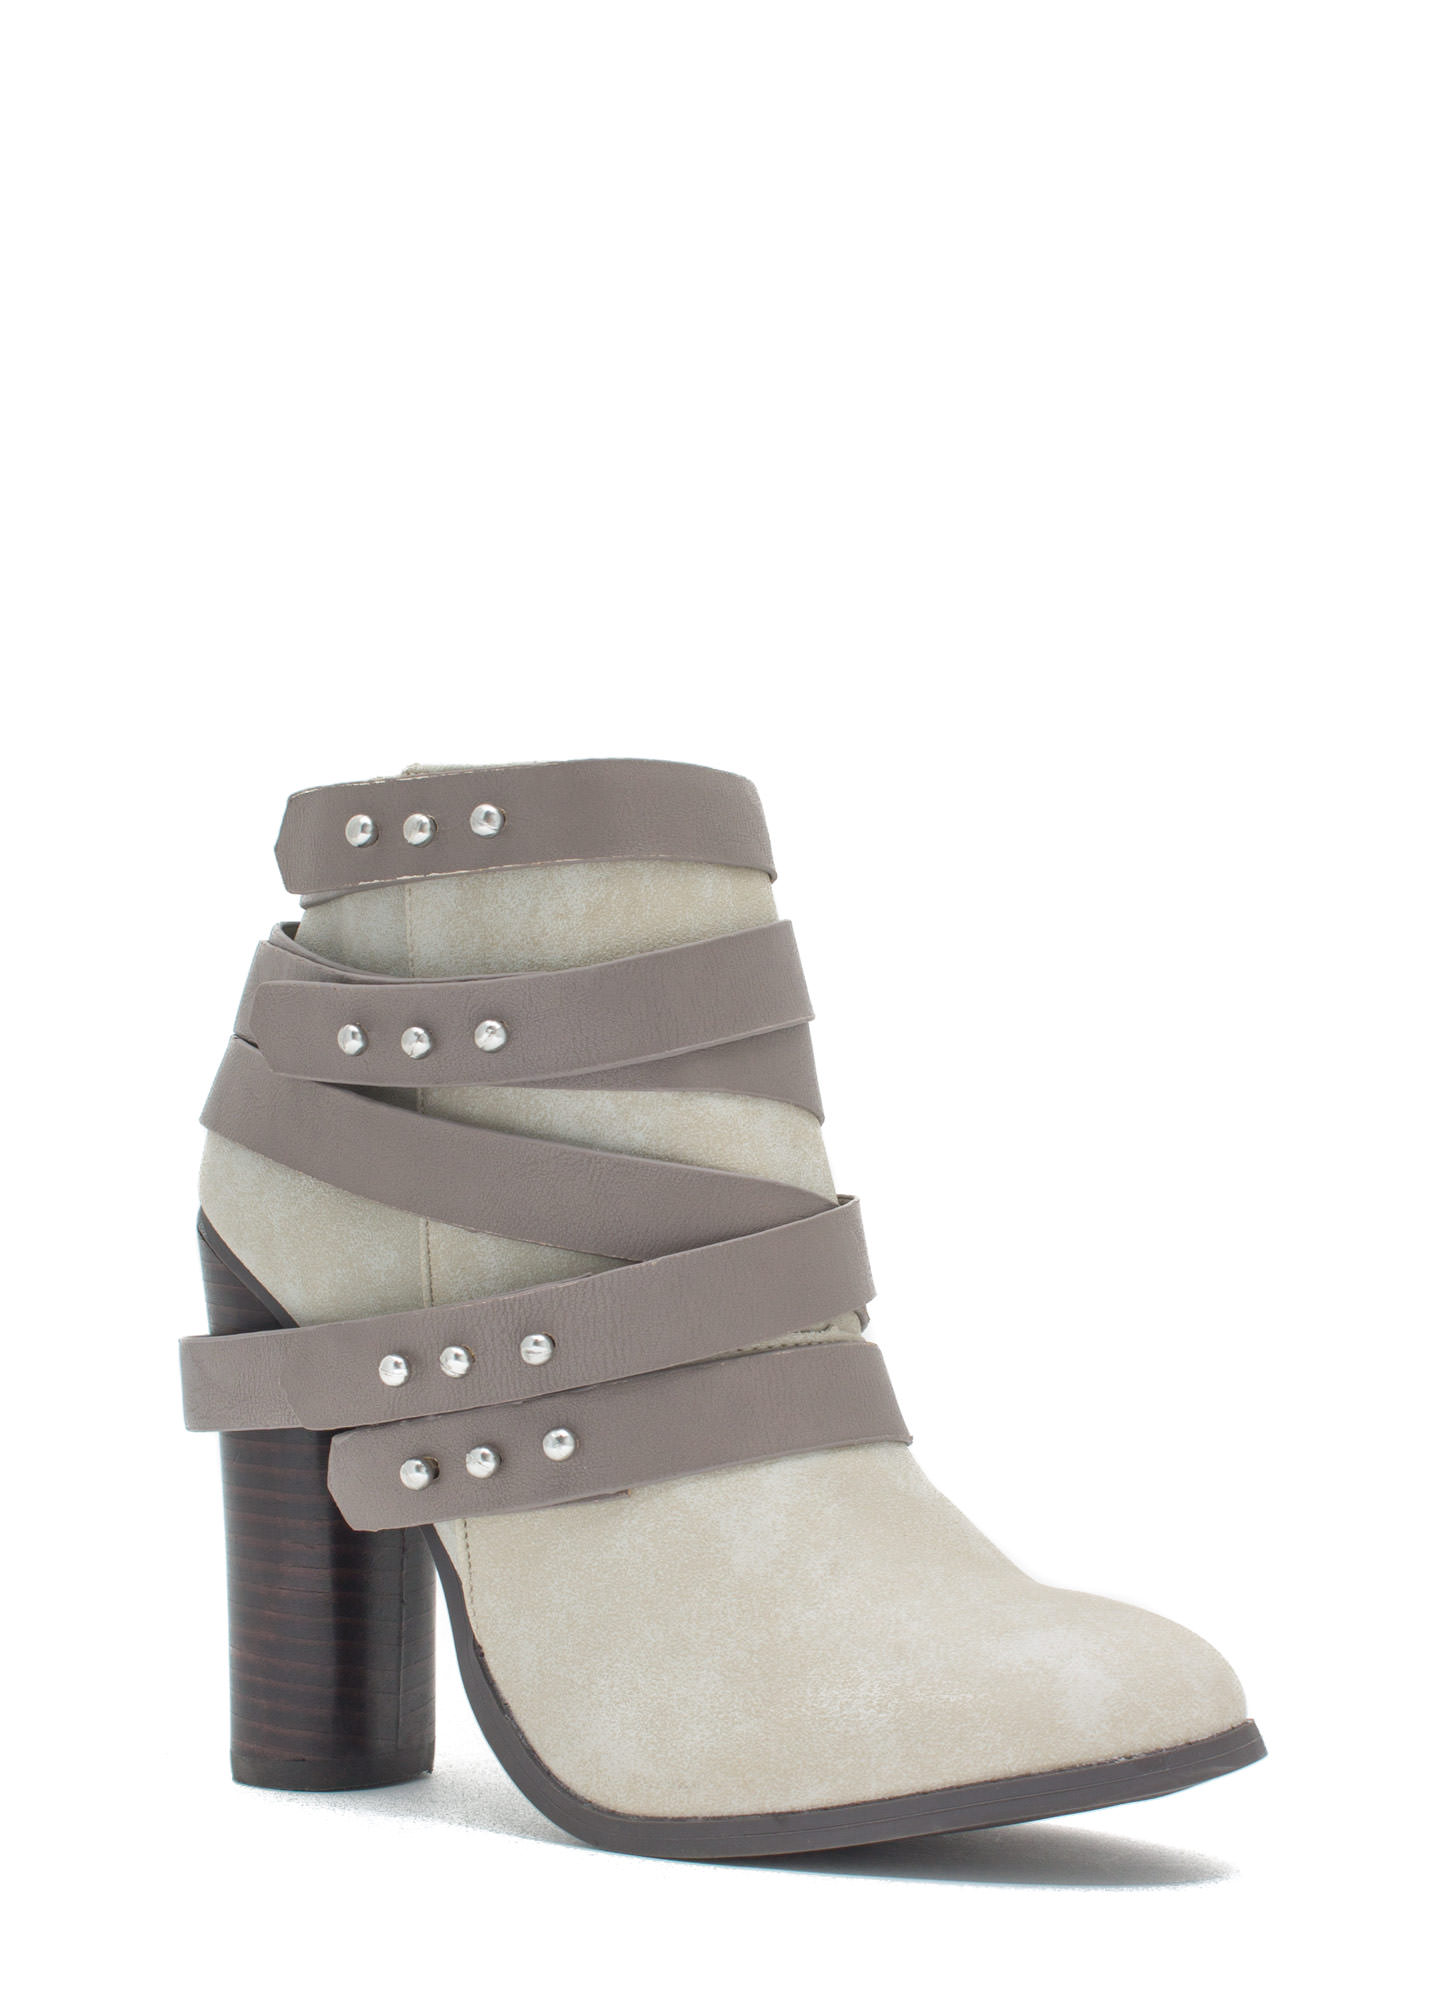 That's A Wrap Studded Booties STONE